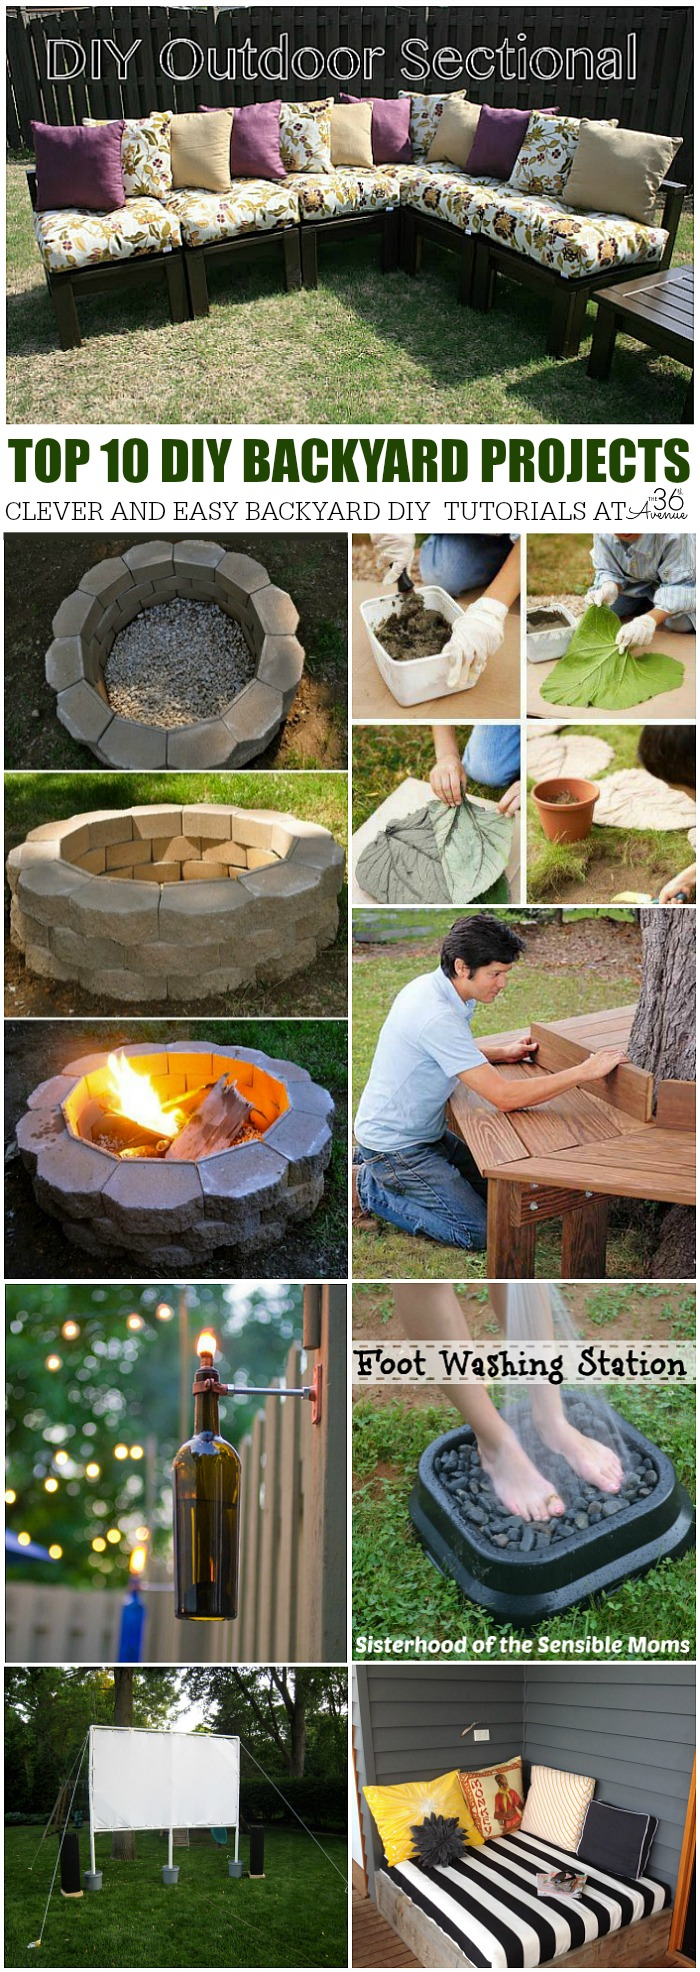 diy backyard top 10 projects at pin it now and make